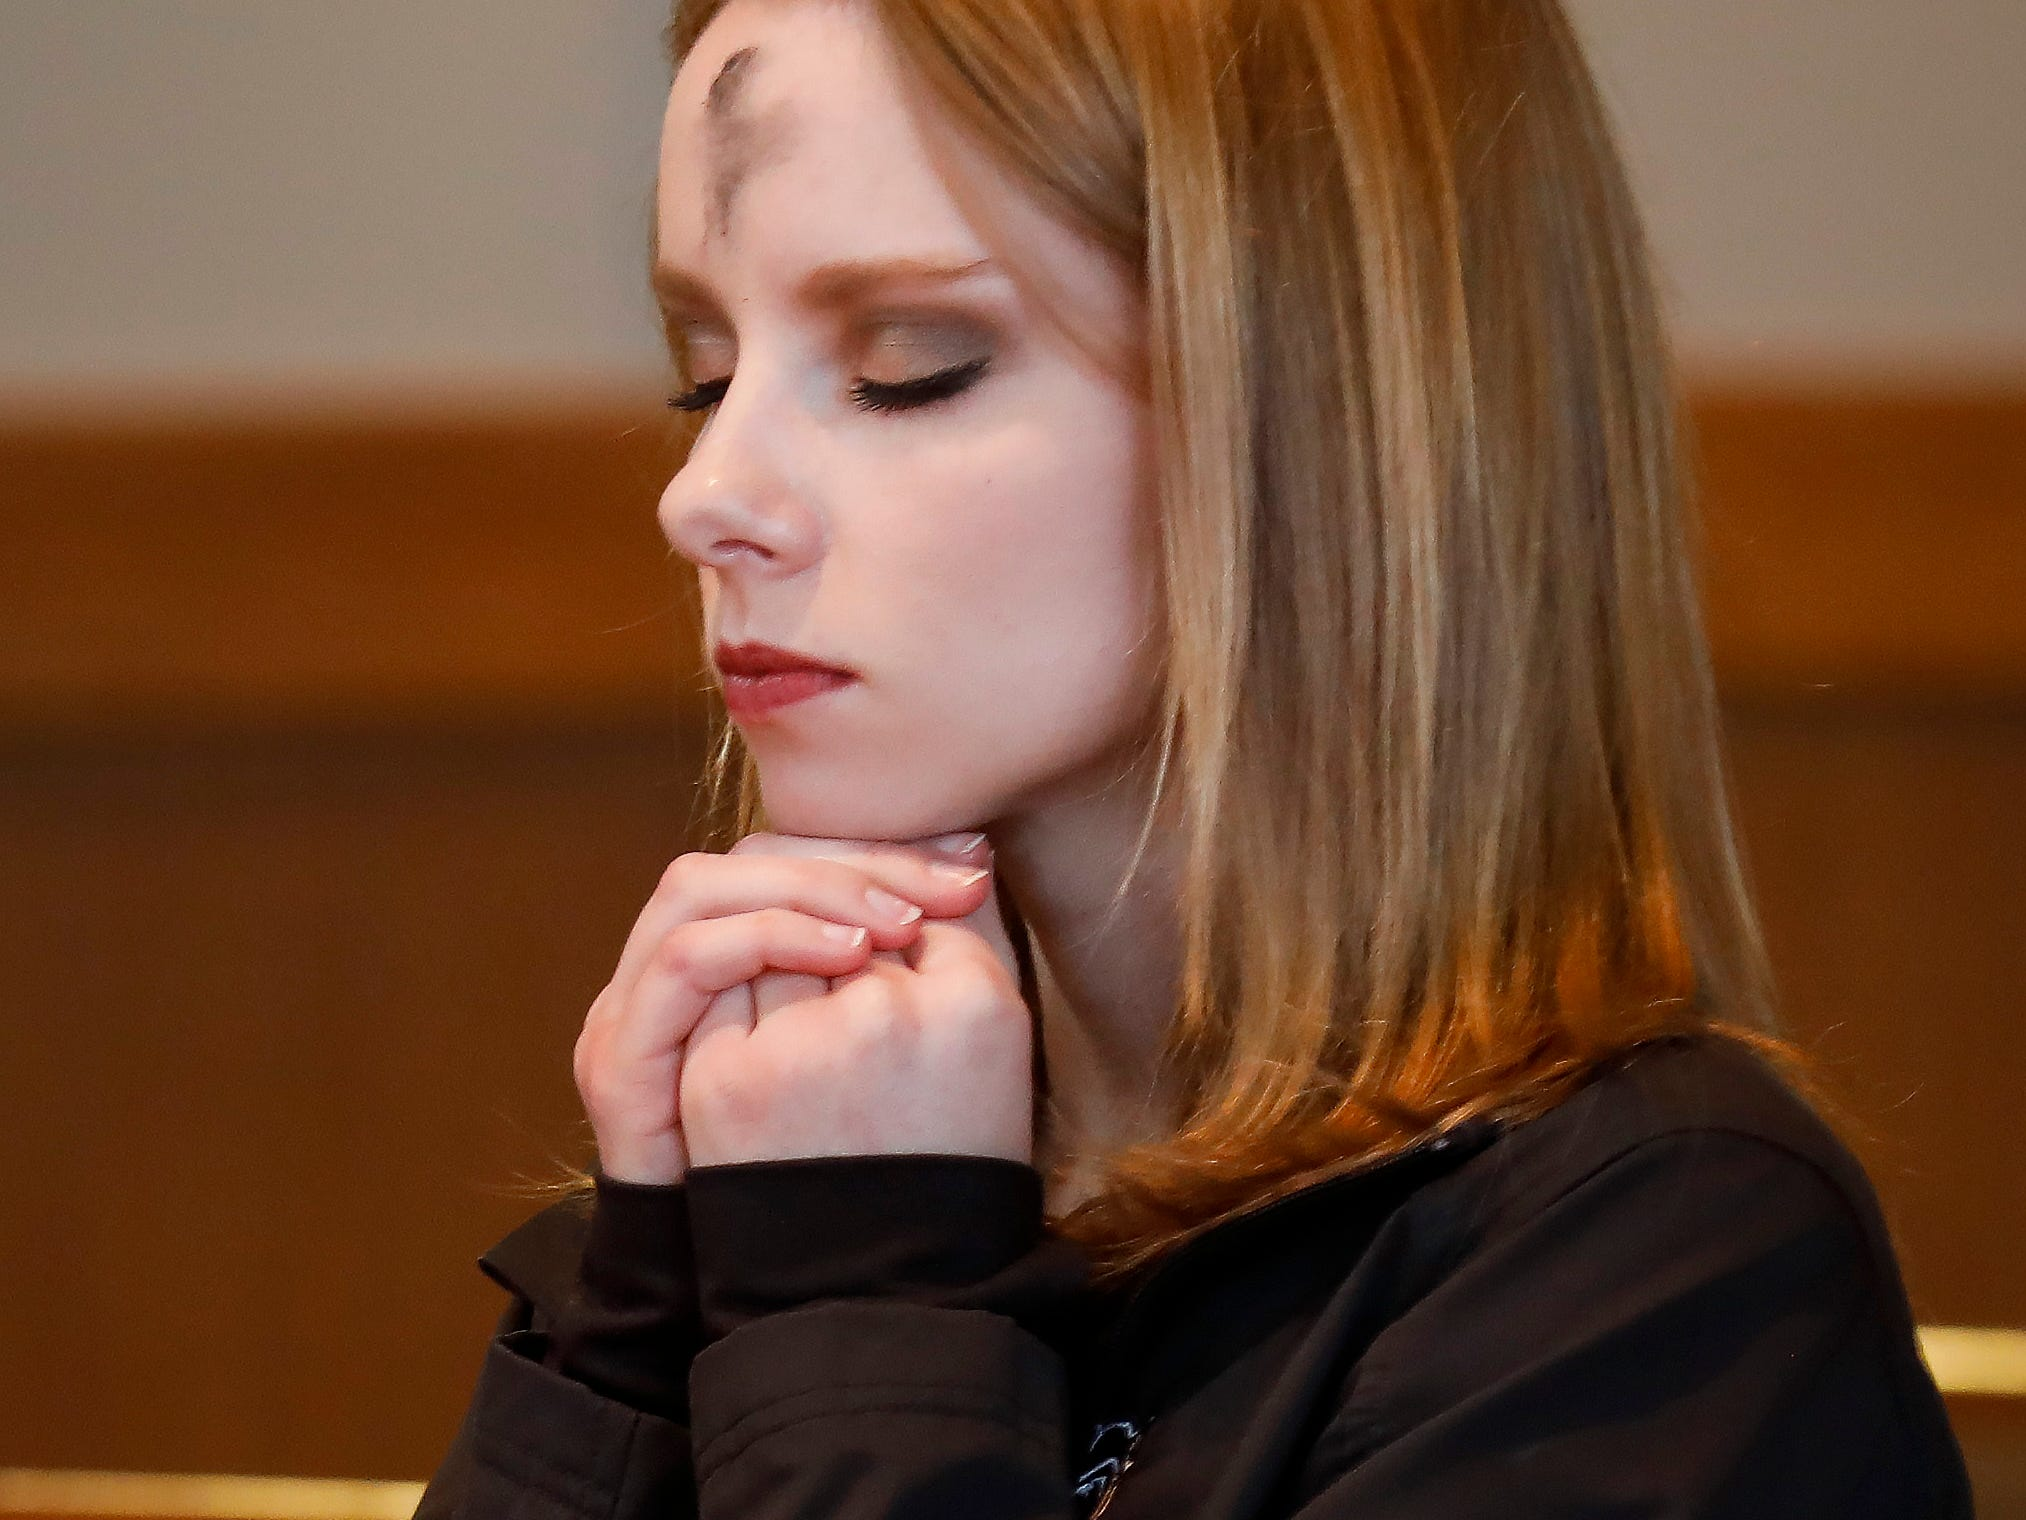 Riley Griesemer, a student at Missouri State University, prays after having ashes applied to her forehead during the Ash Wednesday Mass at the Missouri State University Catholic Campus Ministry on Wednesday, March 6, 2019.